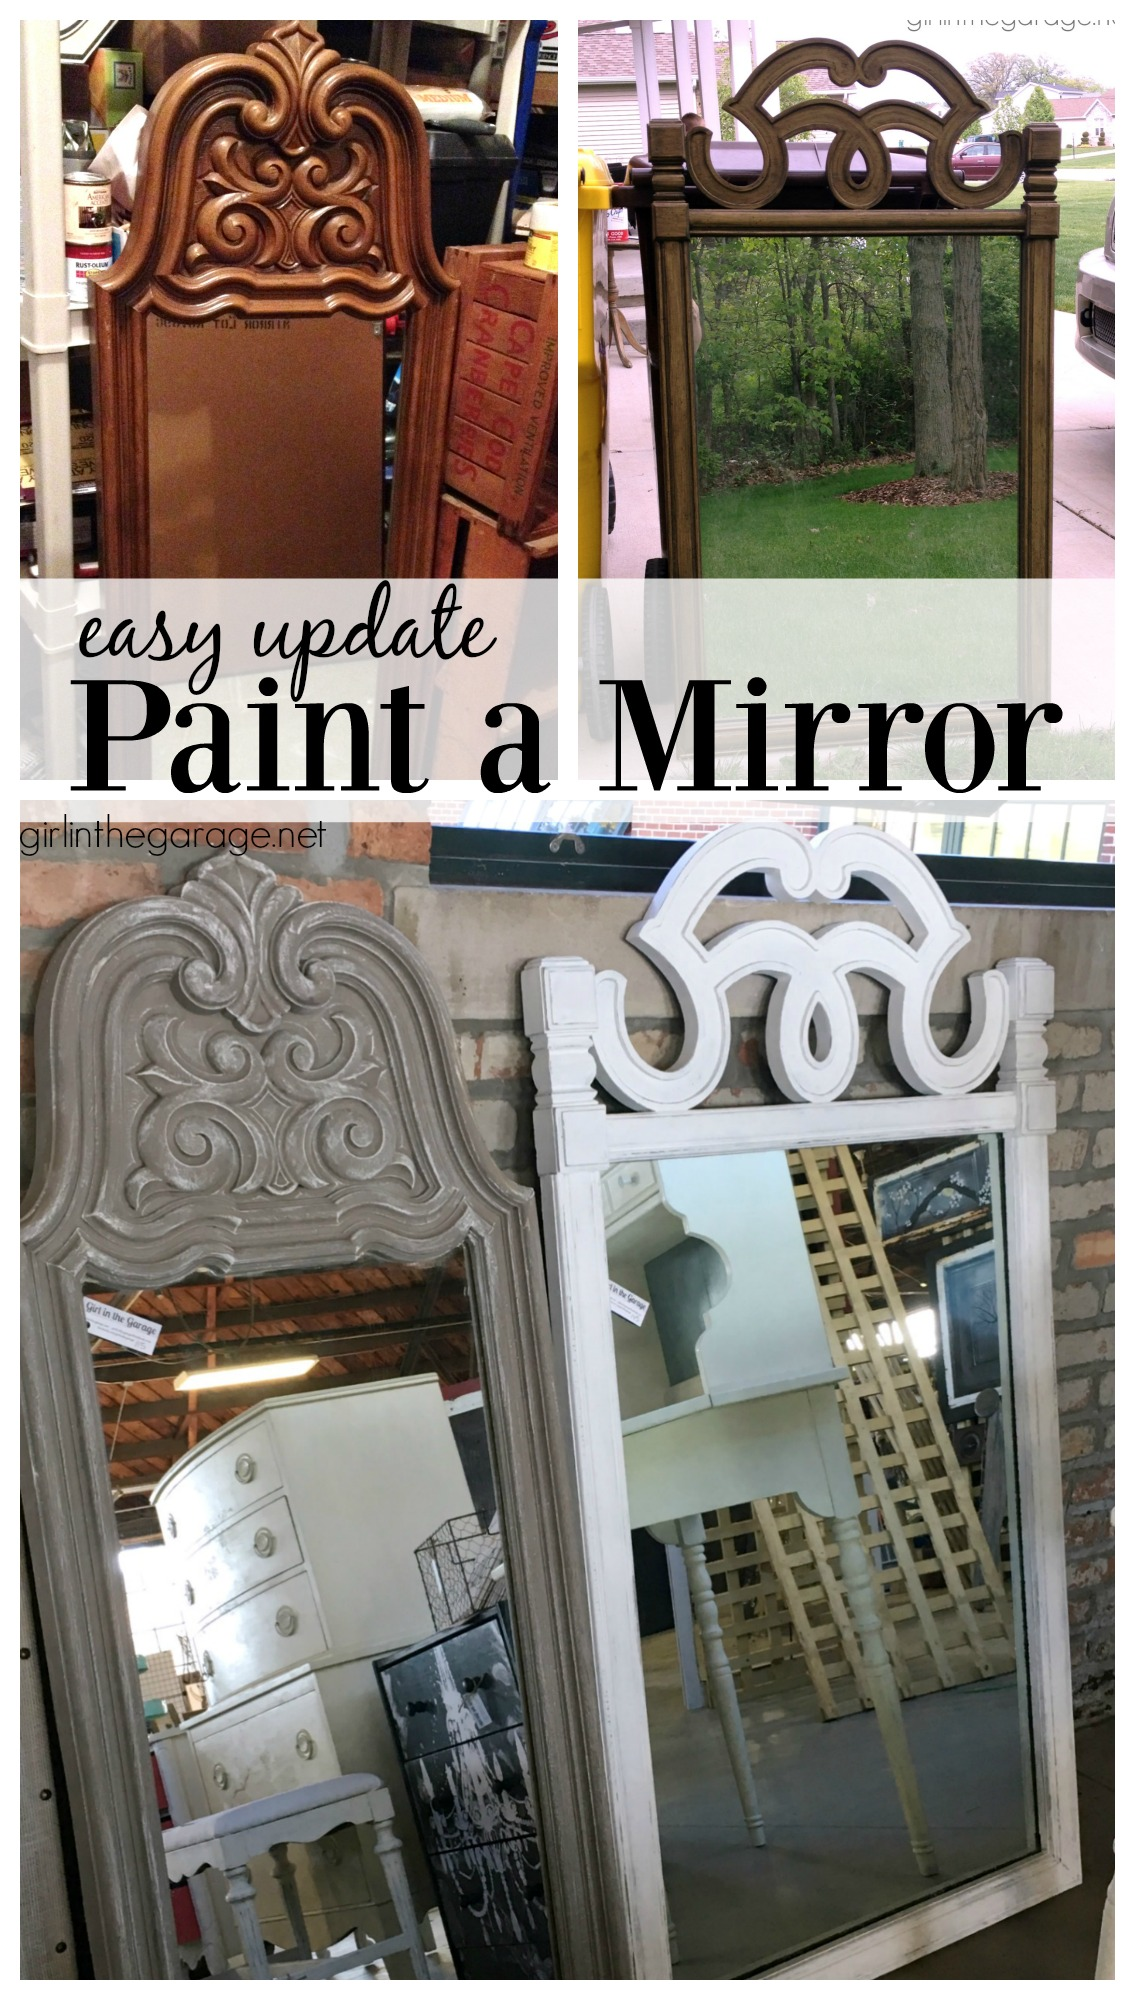 How to Paint a Mirror: An easy, budget-friendly update. Girl in the Garage